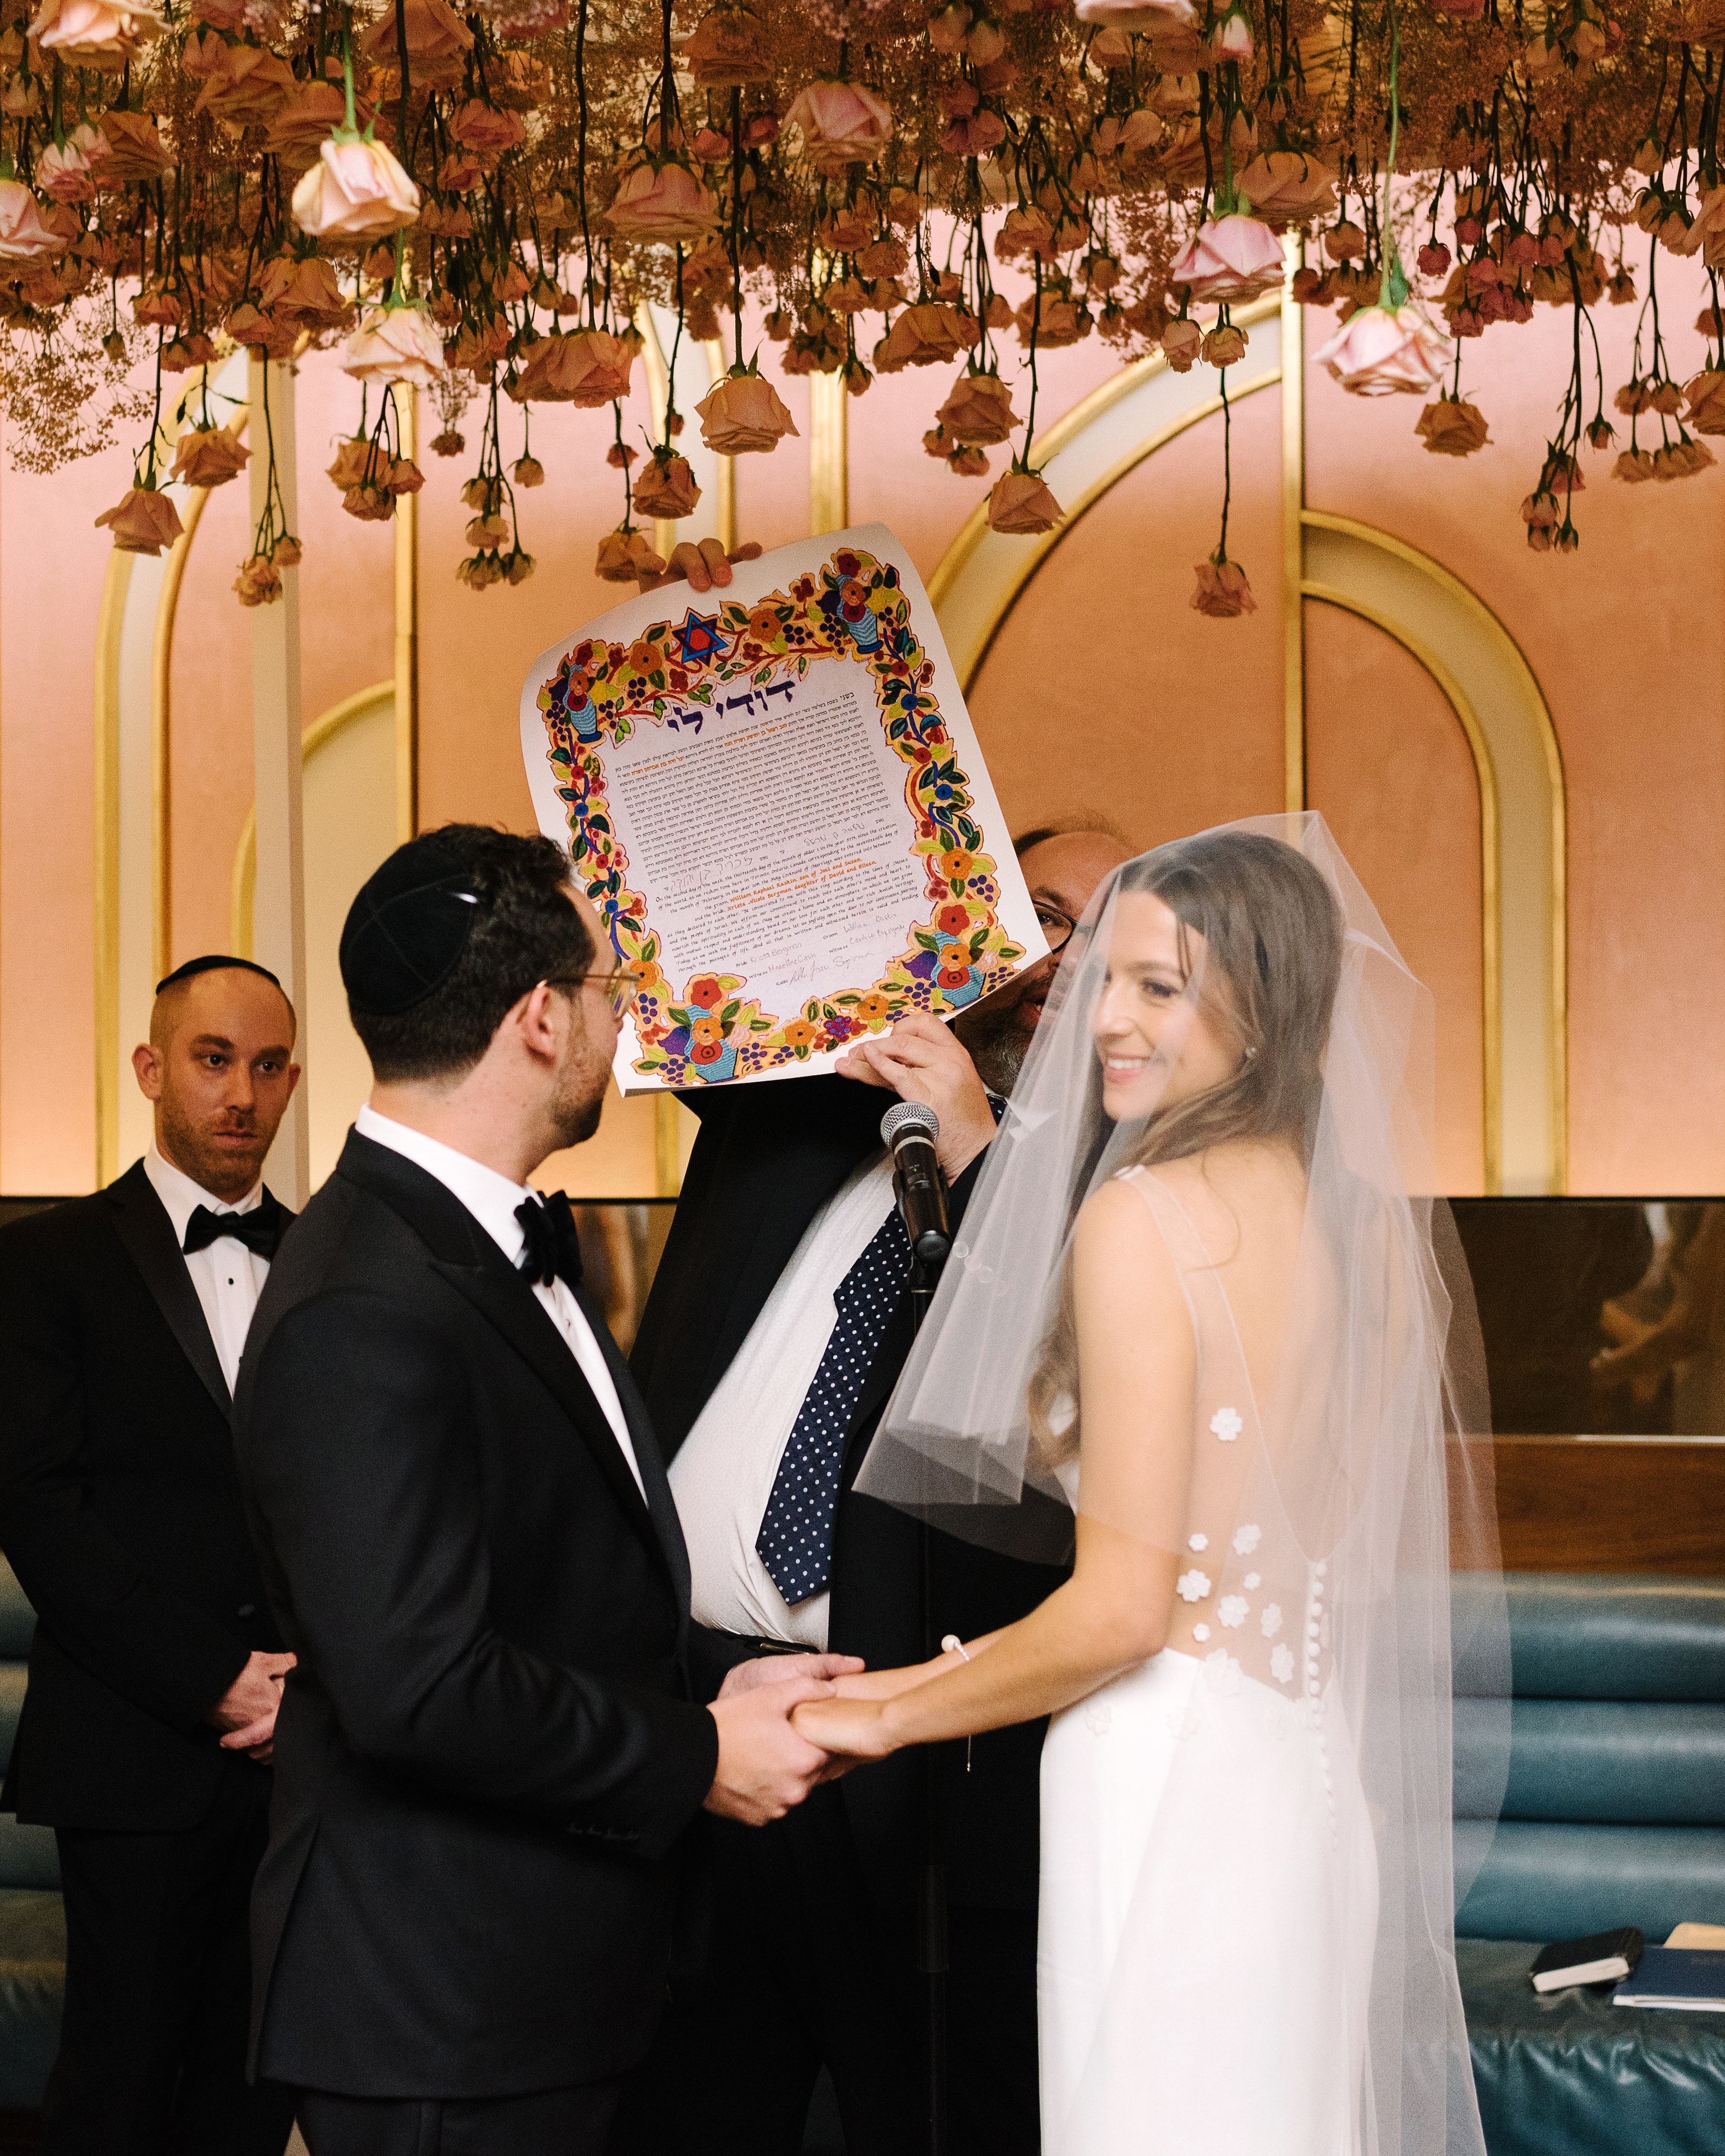 krista will wedding ceremony flowers over bride and groom